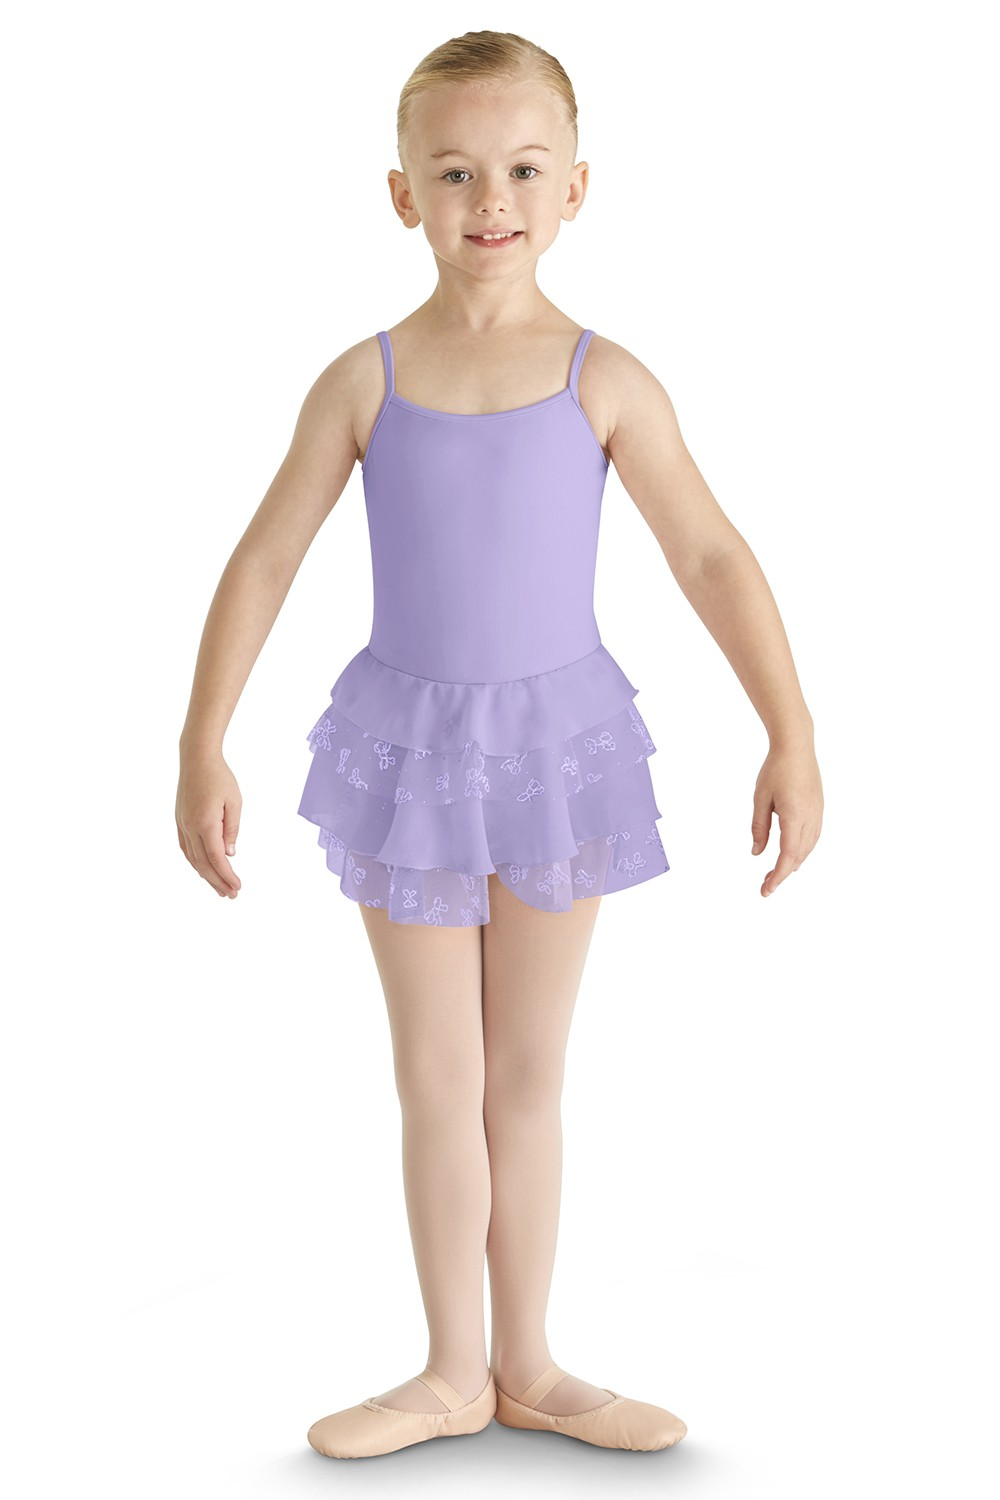 Bastet Children's Dance Leotards